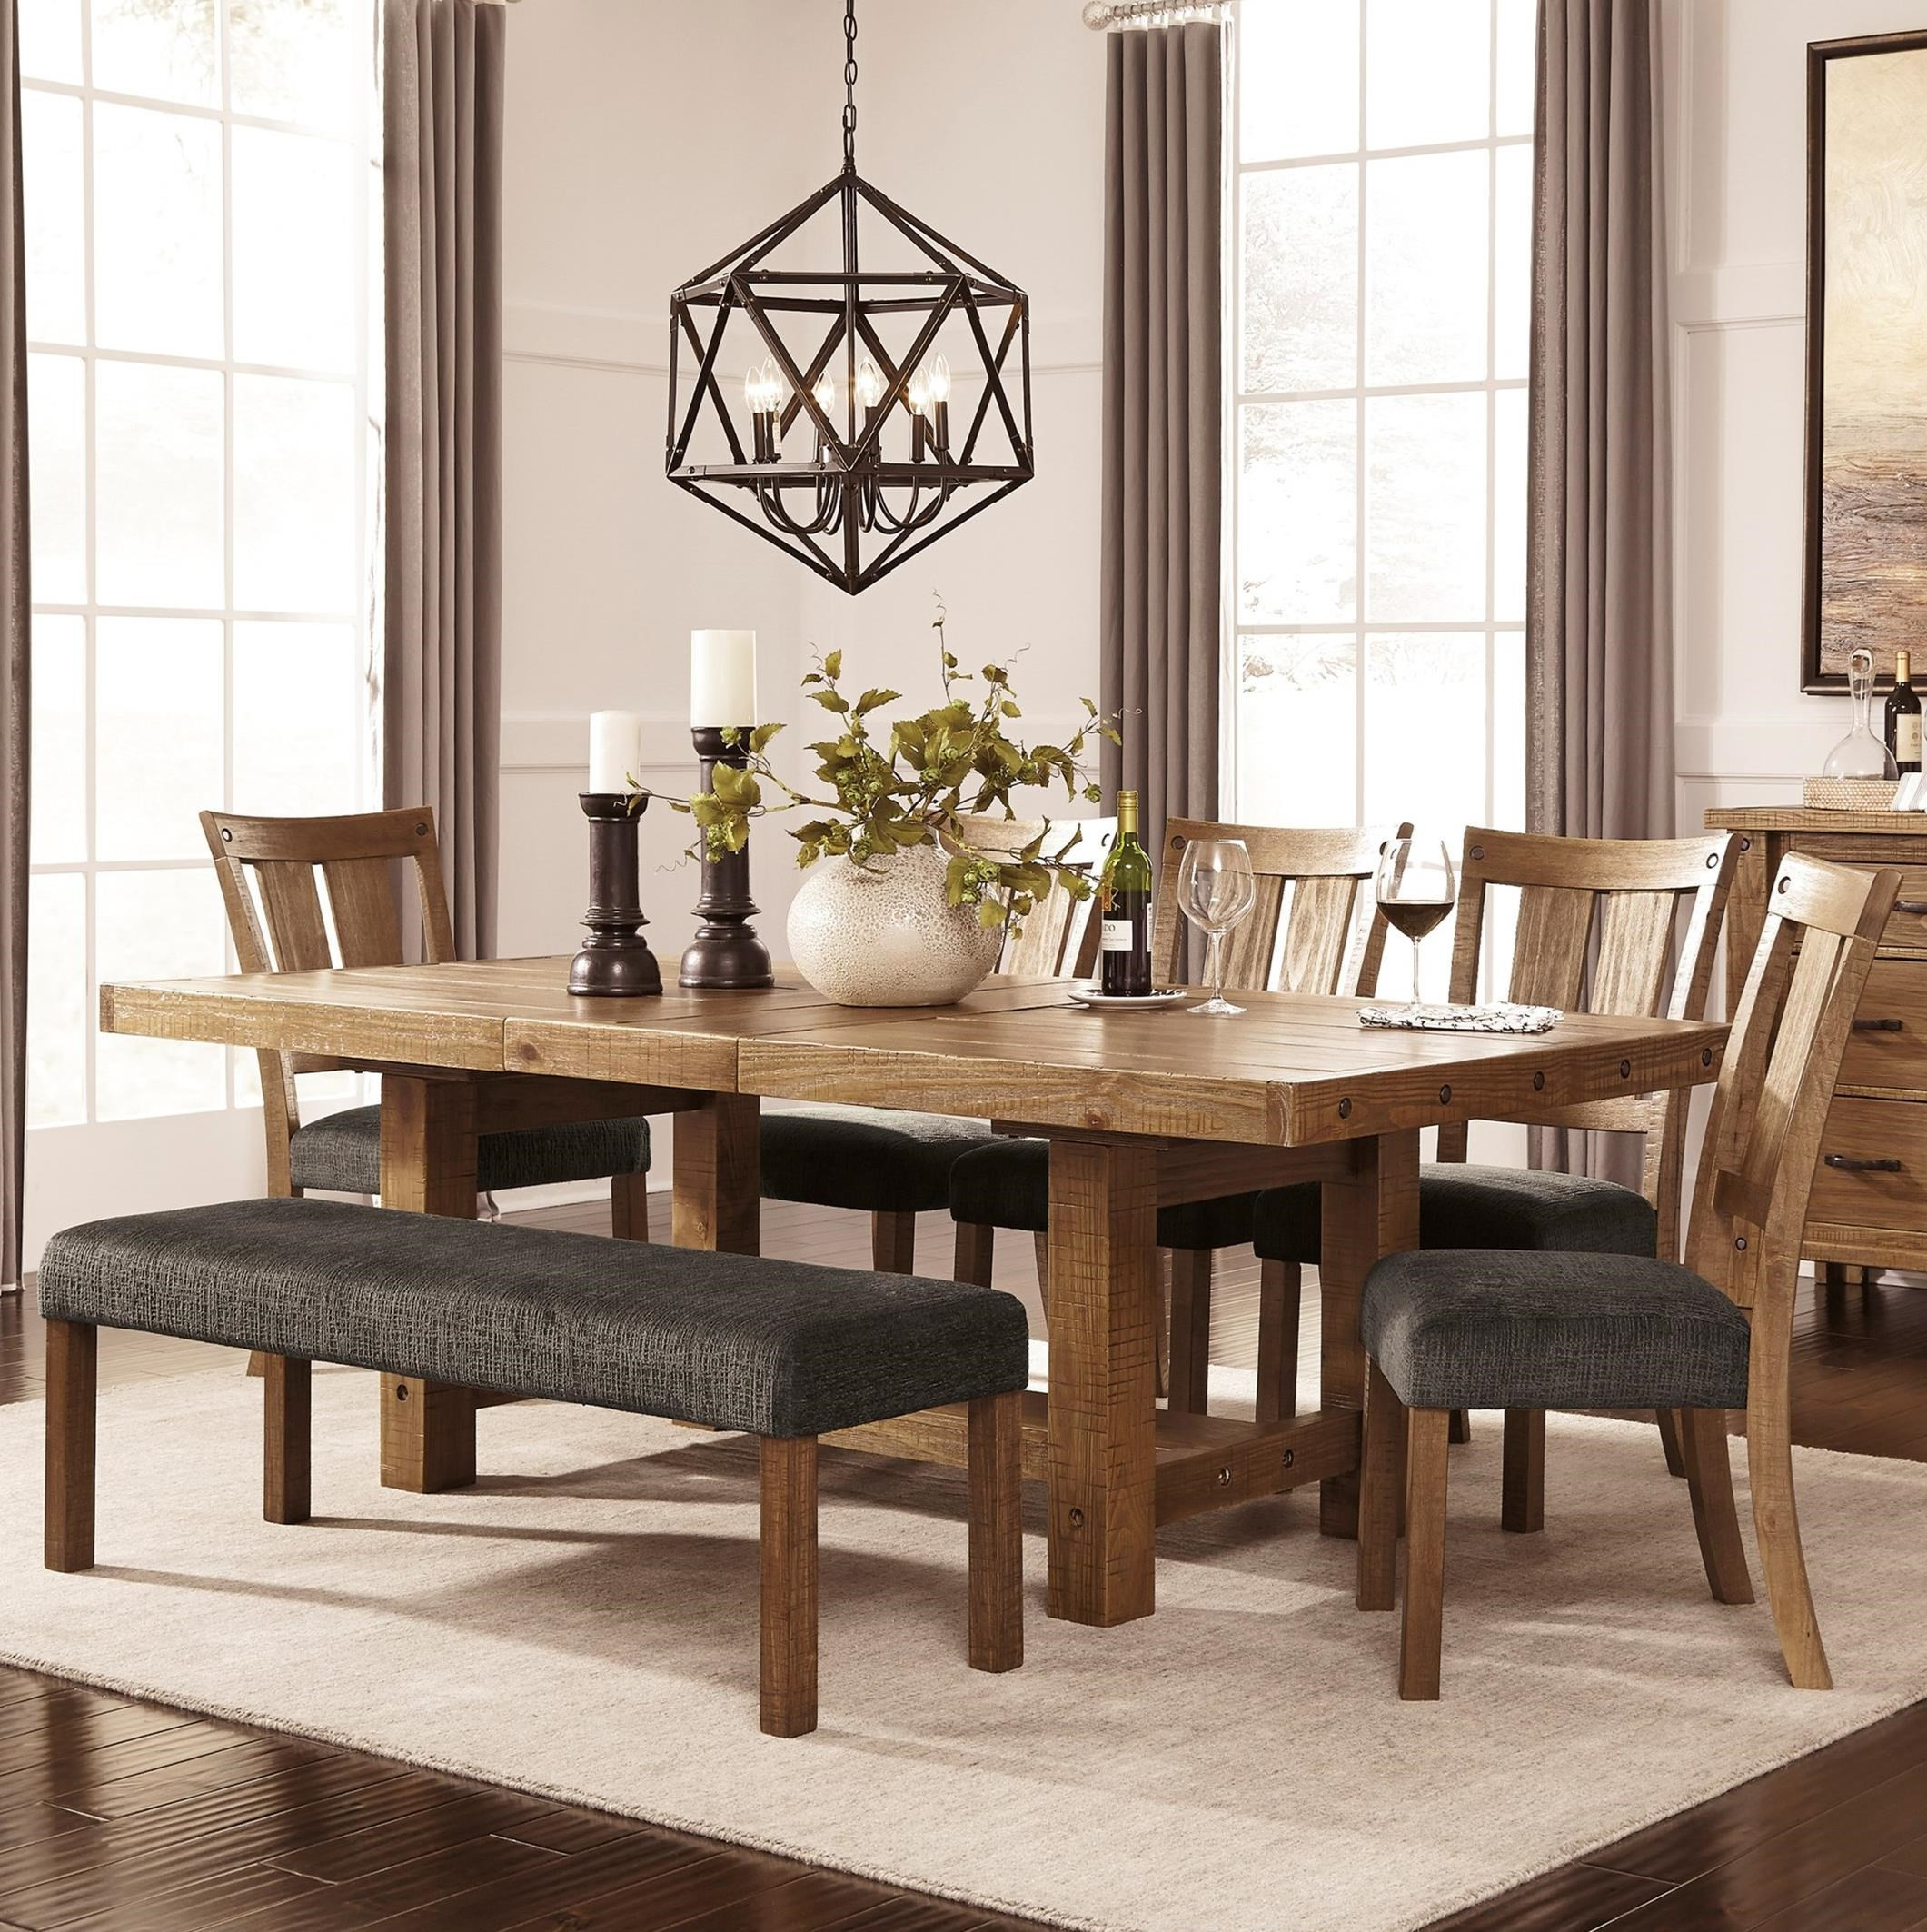 Best ideas about Ashley Furniture Dining Table . Save or Pin 7 Piece Table & Chair Set with Bench by Signature Design Now.